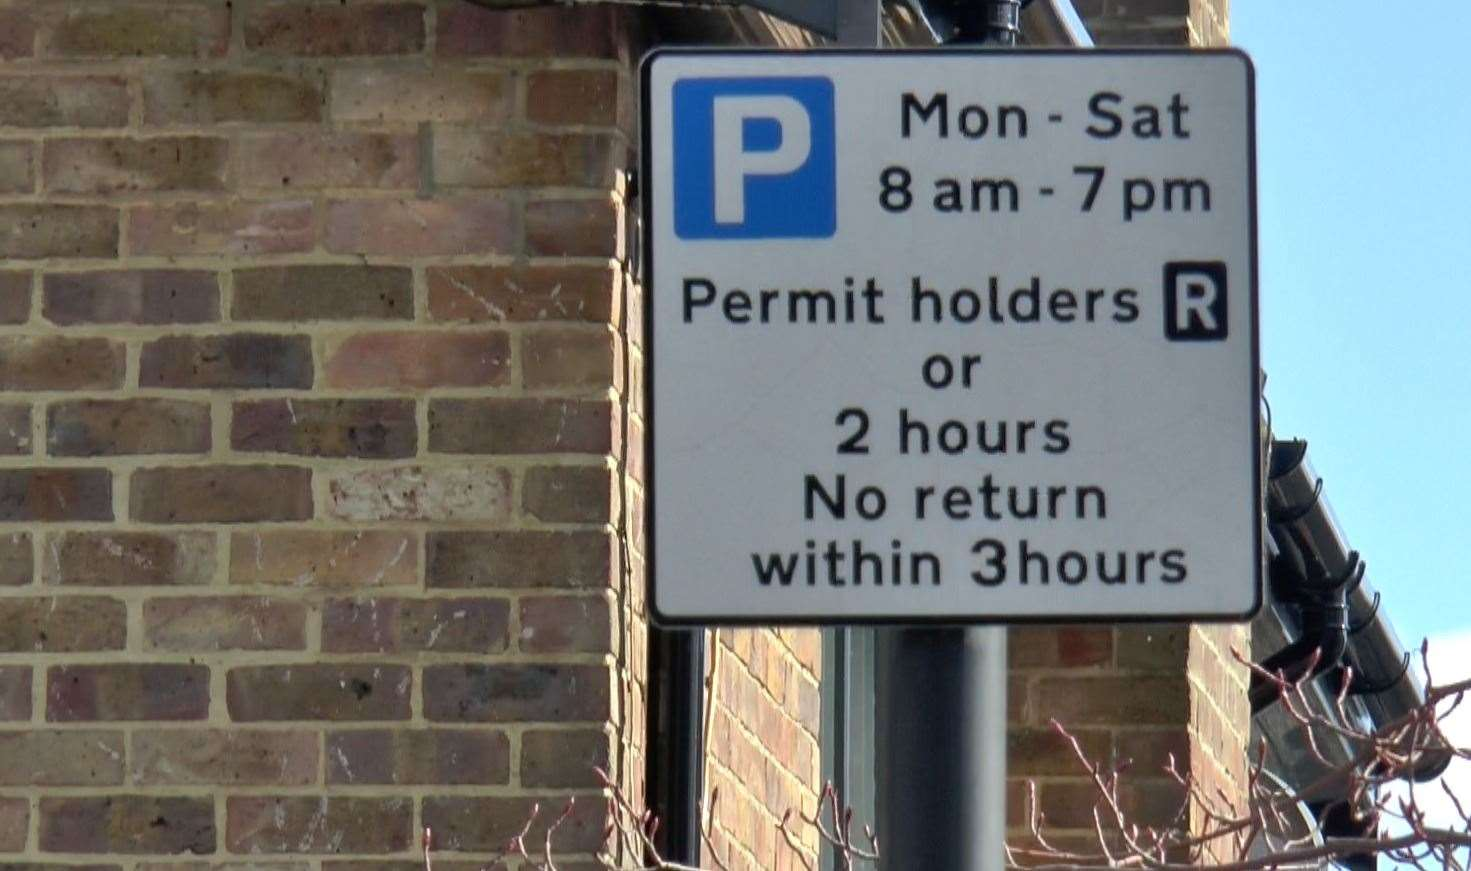 Parking permits in Canterbury have gone from £700 in 2017 to £950